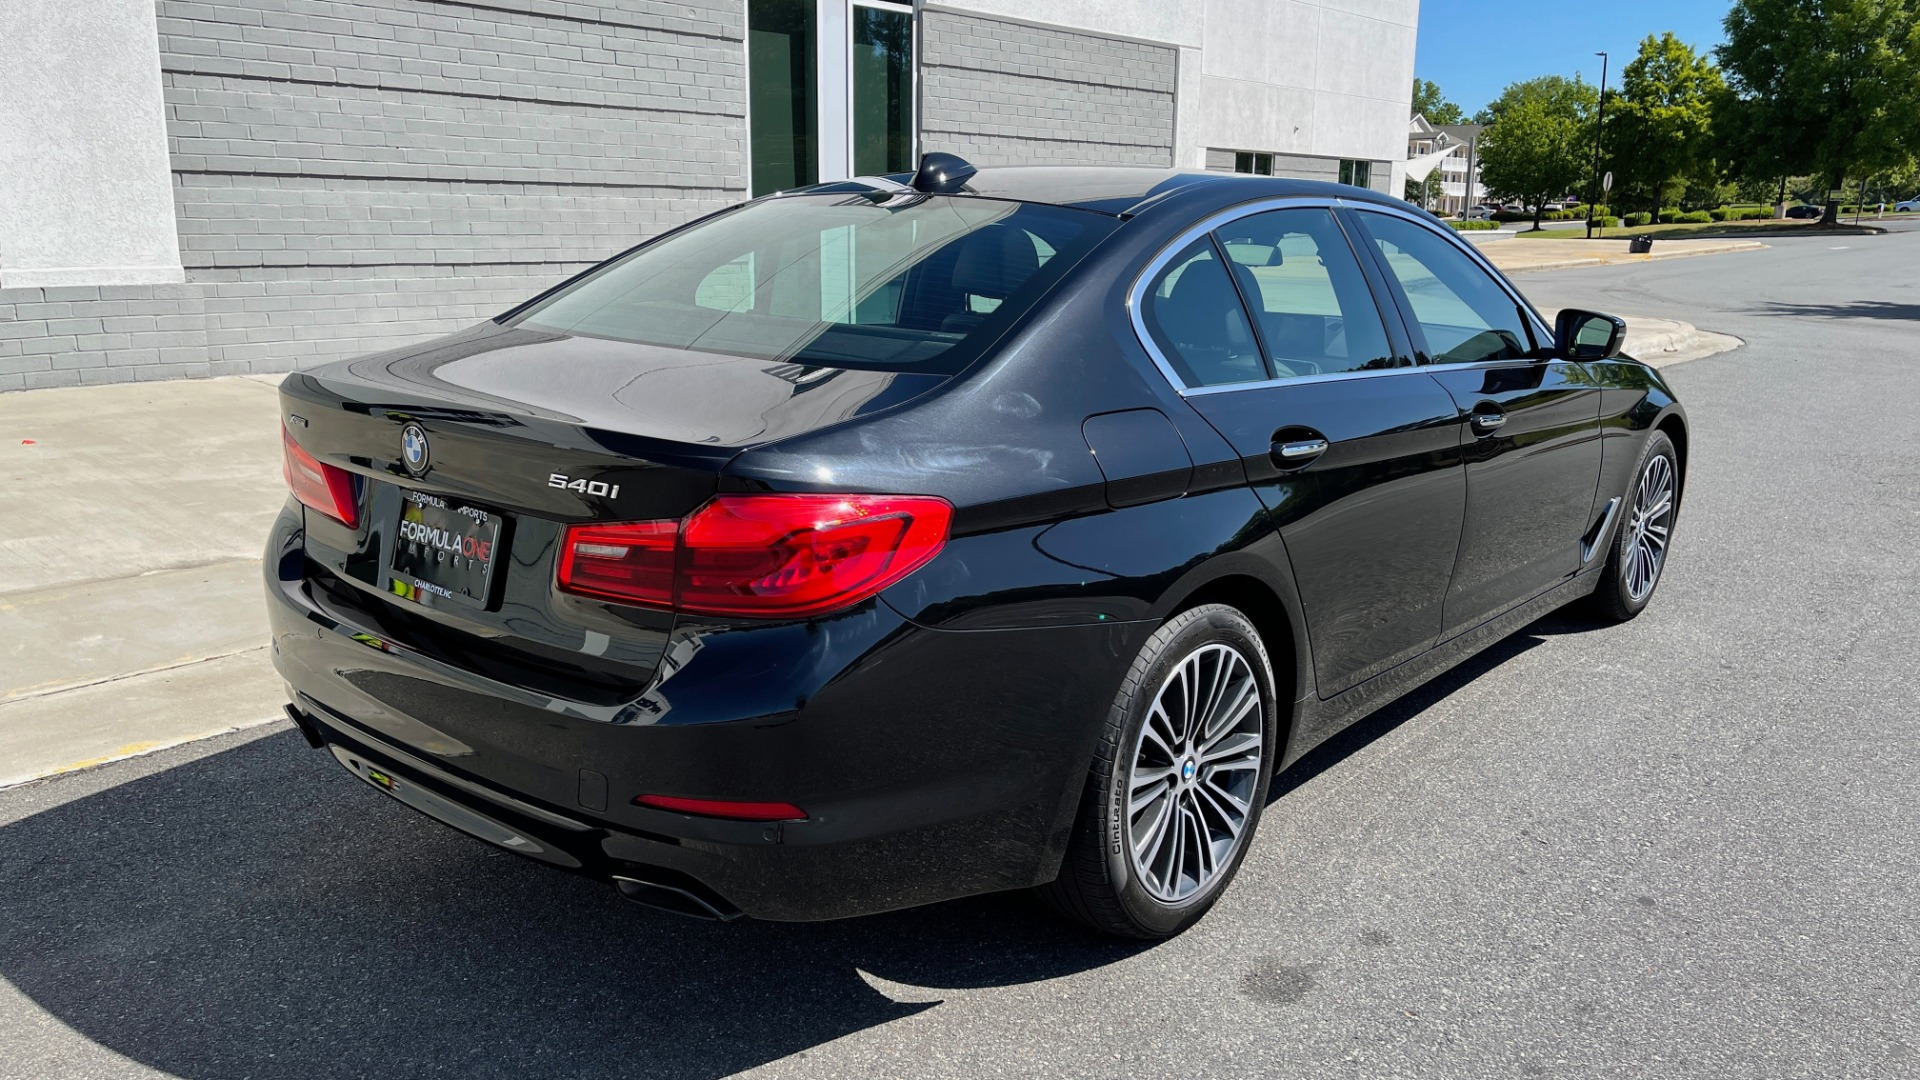 Used 2018 BMW 5 SERIES 540I XDRIVE PREMIUM / NAV / PARK ASST / WIRELESS CHARGING H/K SND for sale $38,395 at Formula Imports in Charlotte NC 28227 2